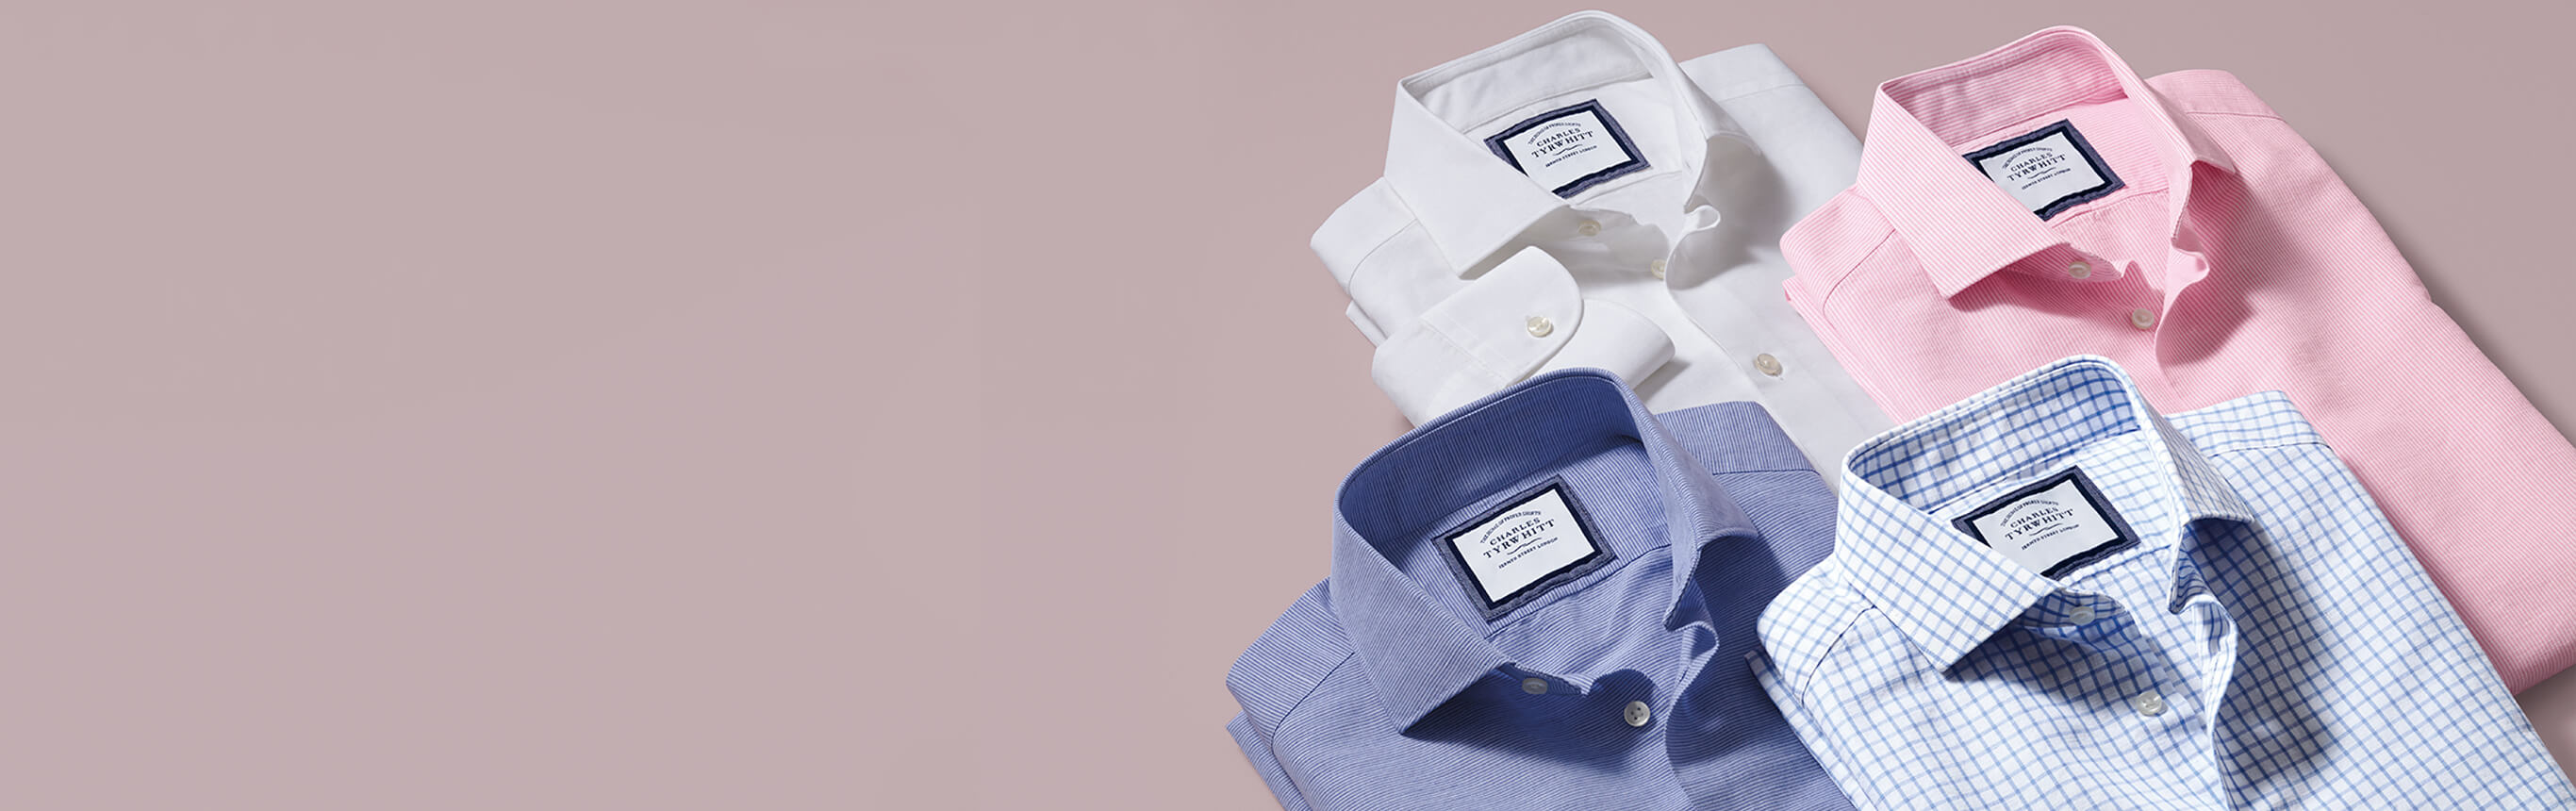 4 business casual shirts against dusky pink background